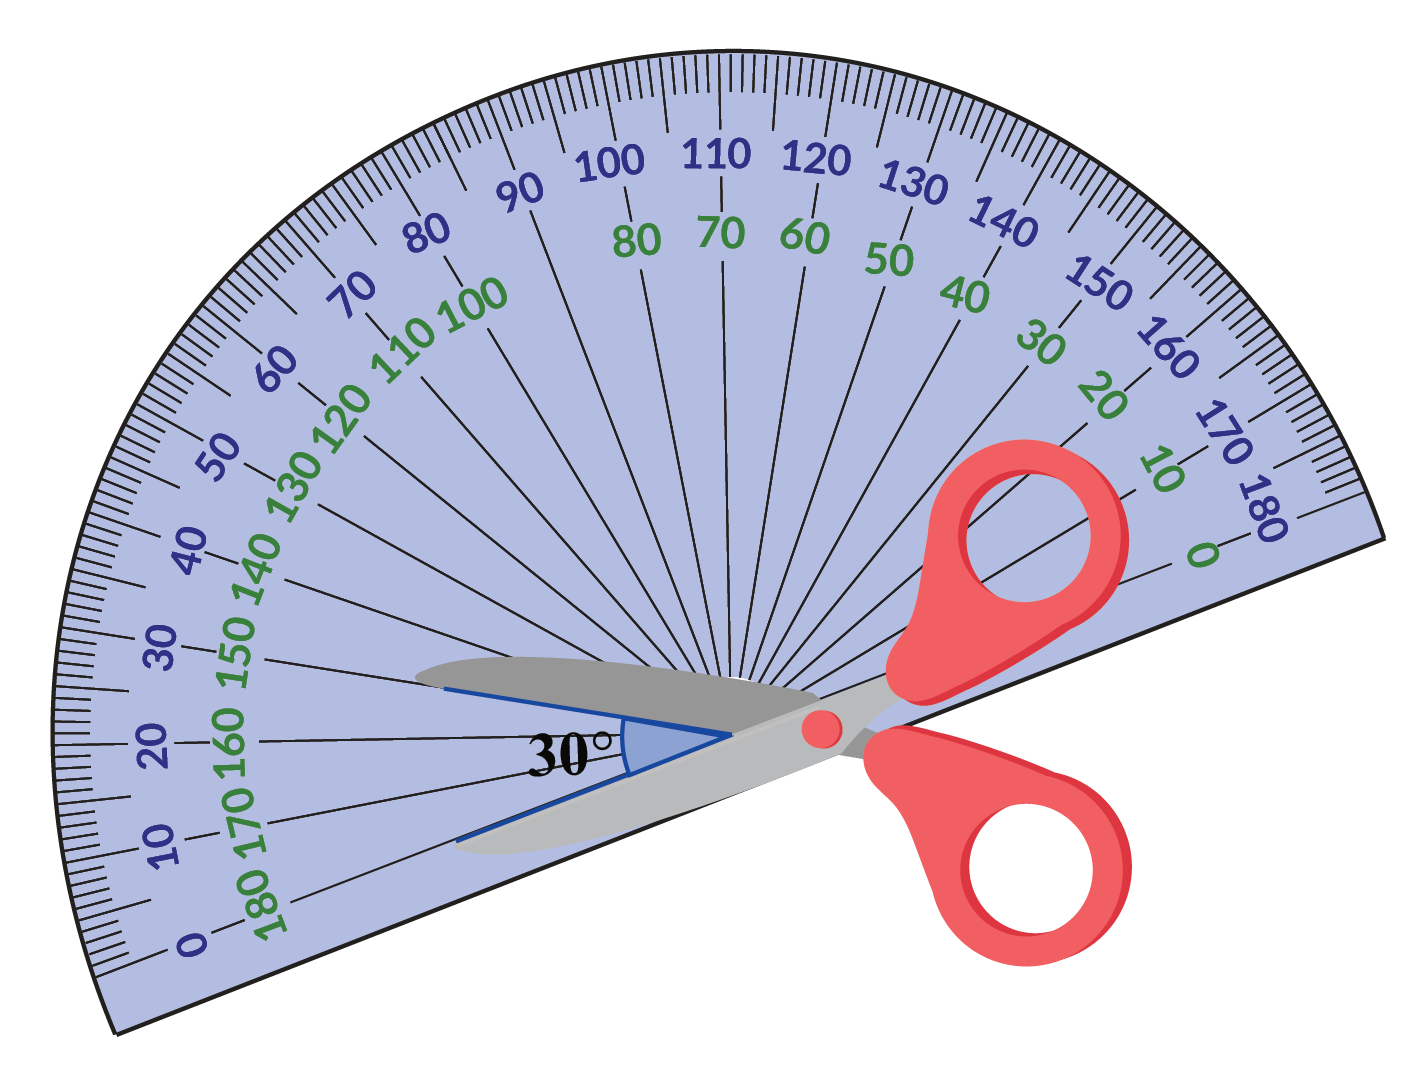 Angle formed between the arms of the scissors as seen with a protractor is 30 degrees.